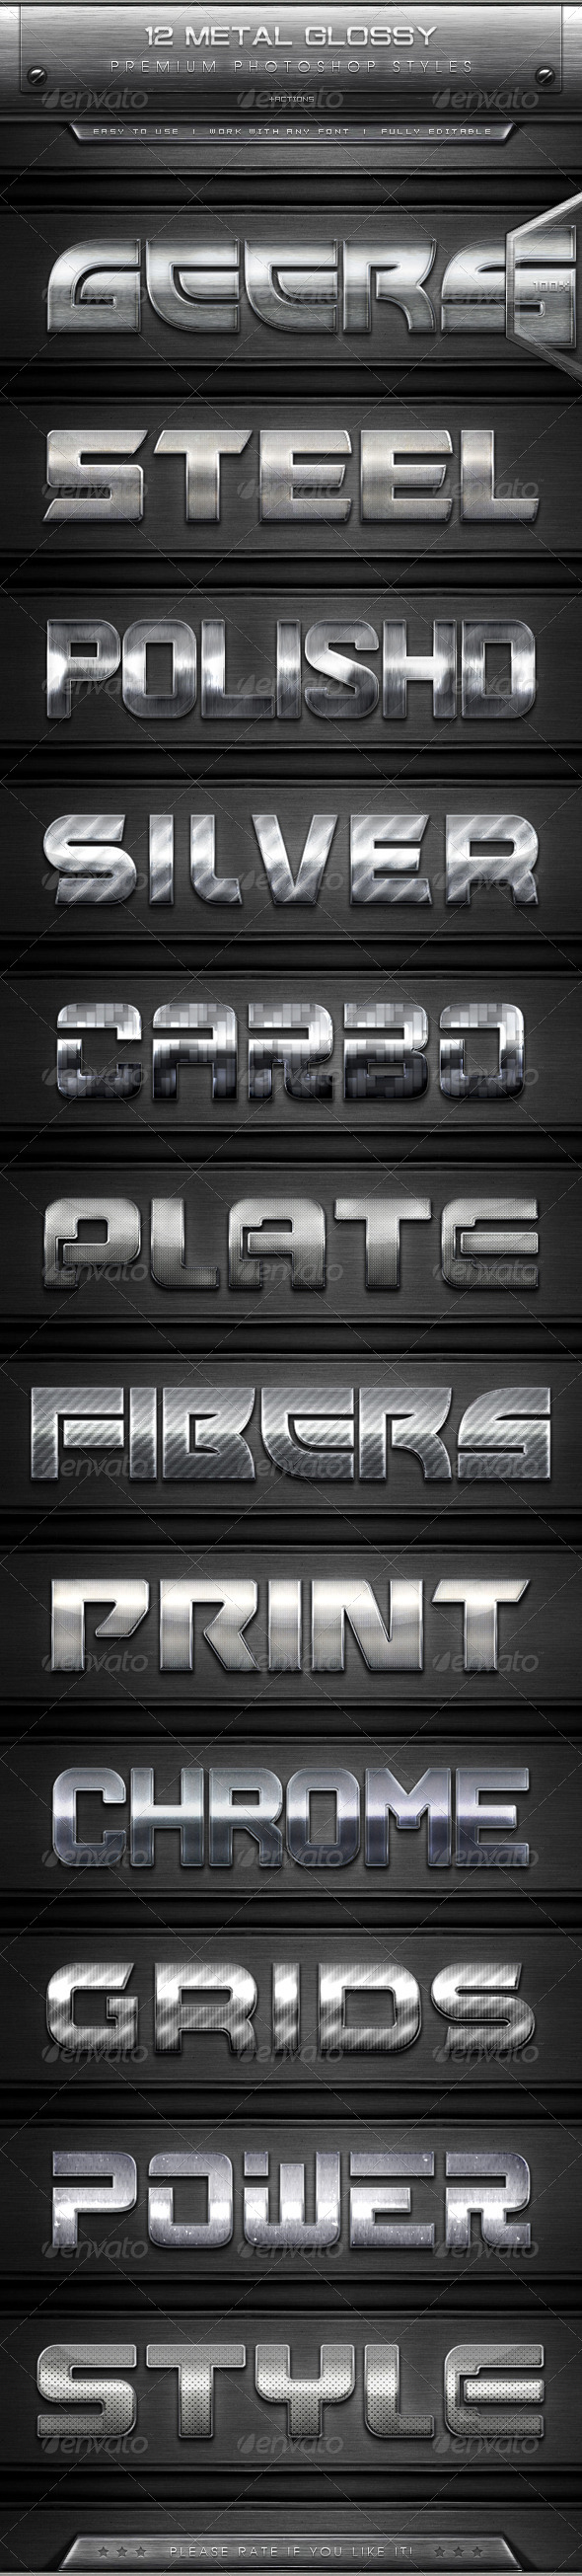 GraphicRiver 12 Metal Glossy Text Effect Styles & Actions 7891191